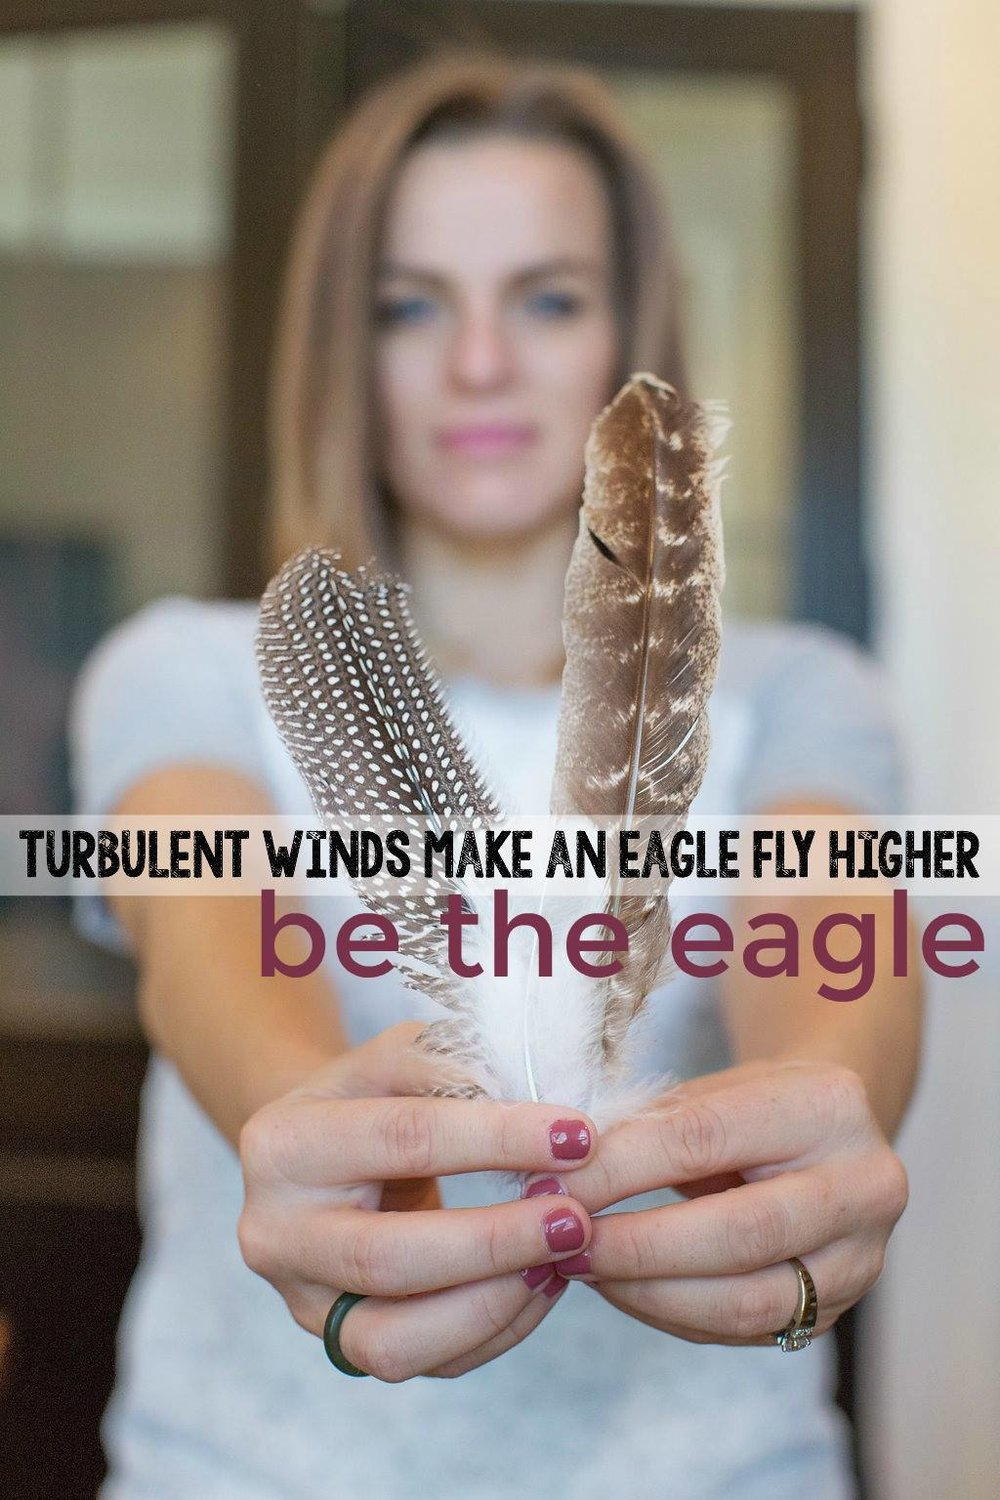 Turbulent winds make an eagle fly higher, be the eagle.